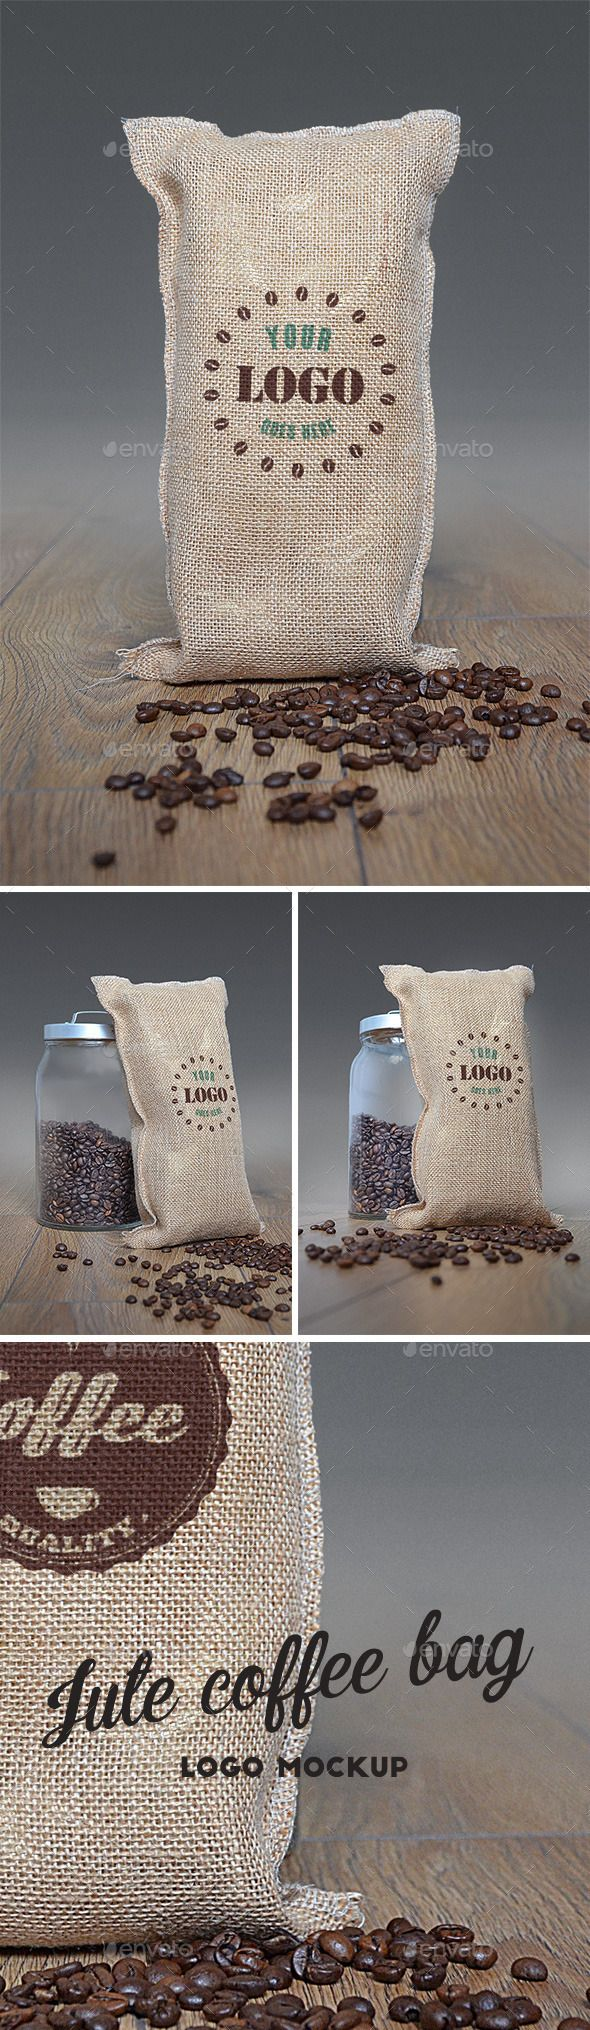 Photorealistic Jute Coffee Bag Logo Mockup Set – perfect to present your logo design!  - 3 .PSD files - 300 dpi - based on photo (background and jute bag are one layer) - 2000×3000 px - based on Smart Objects - easy to use - instruction included.